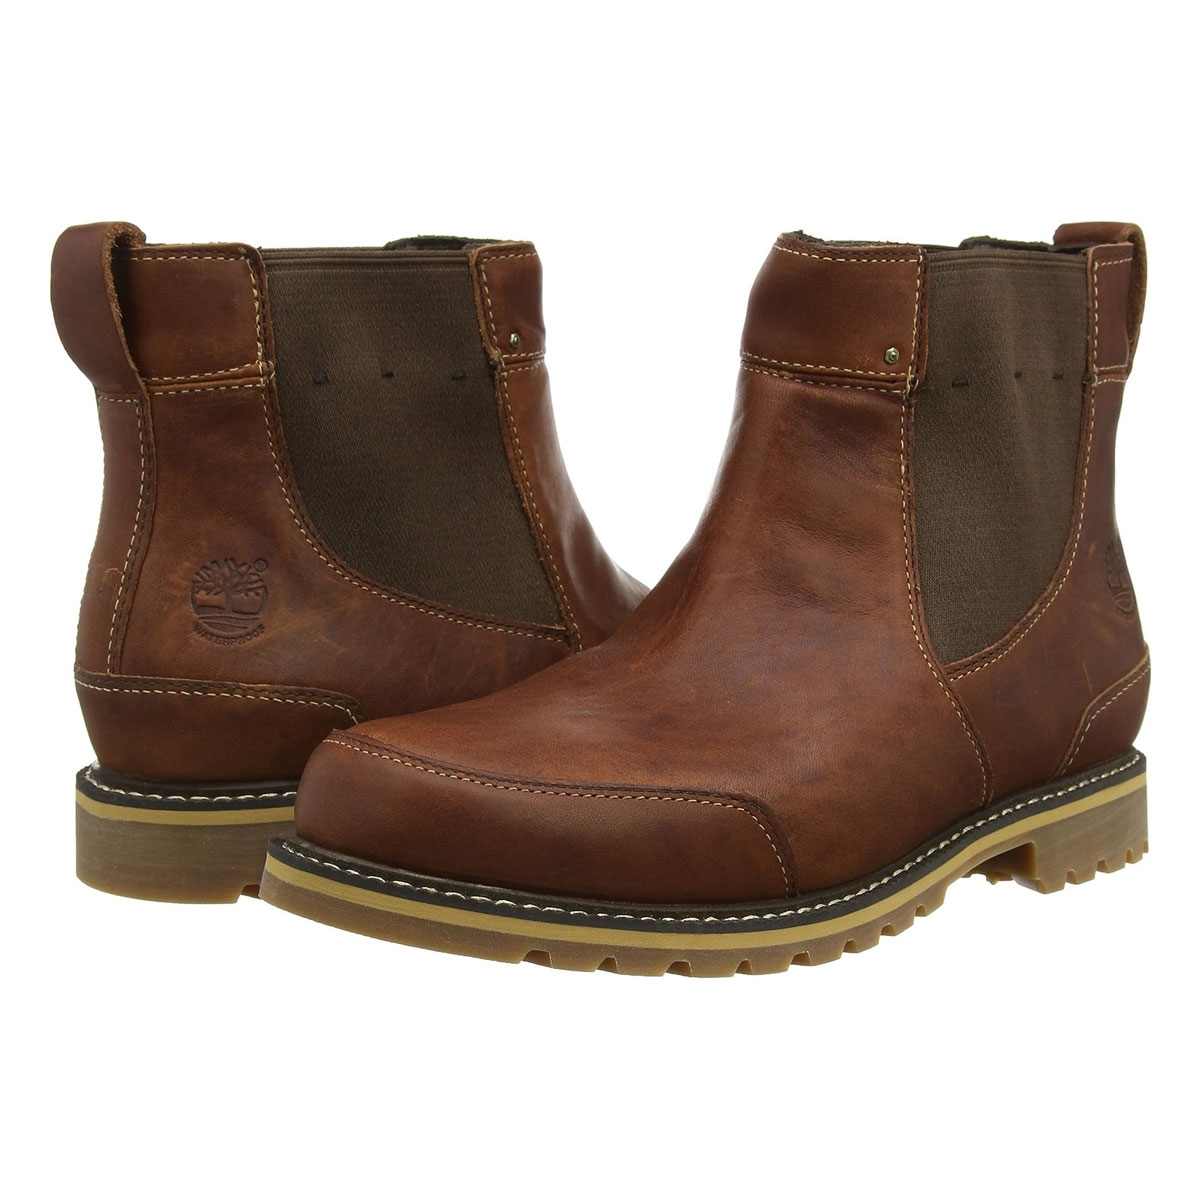 ... Image of Timberland Earthkeepers Chestnut Ridge Chelsea Boot (Men's) -  Brown ...